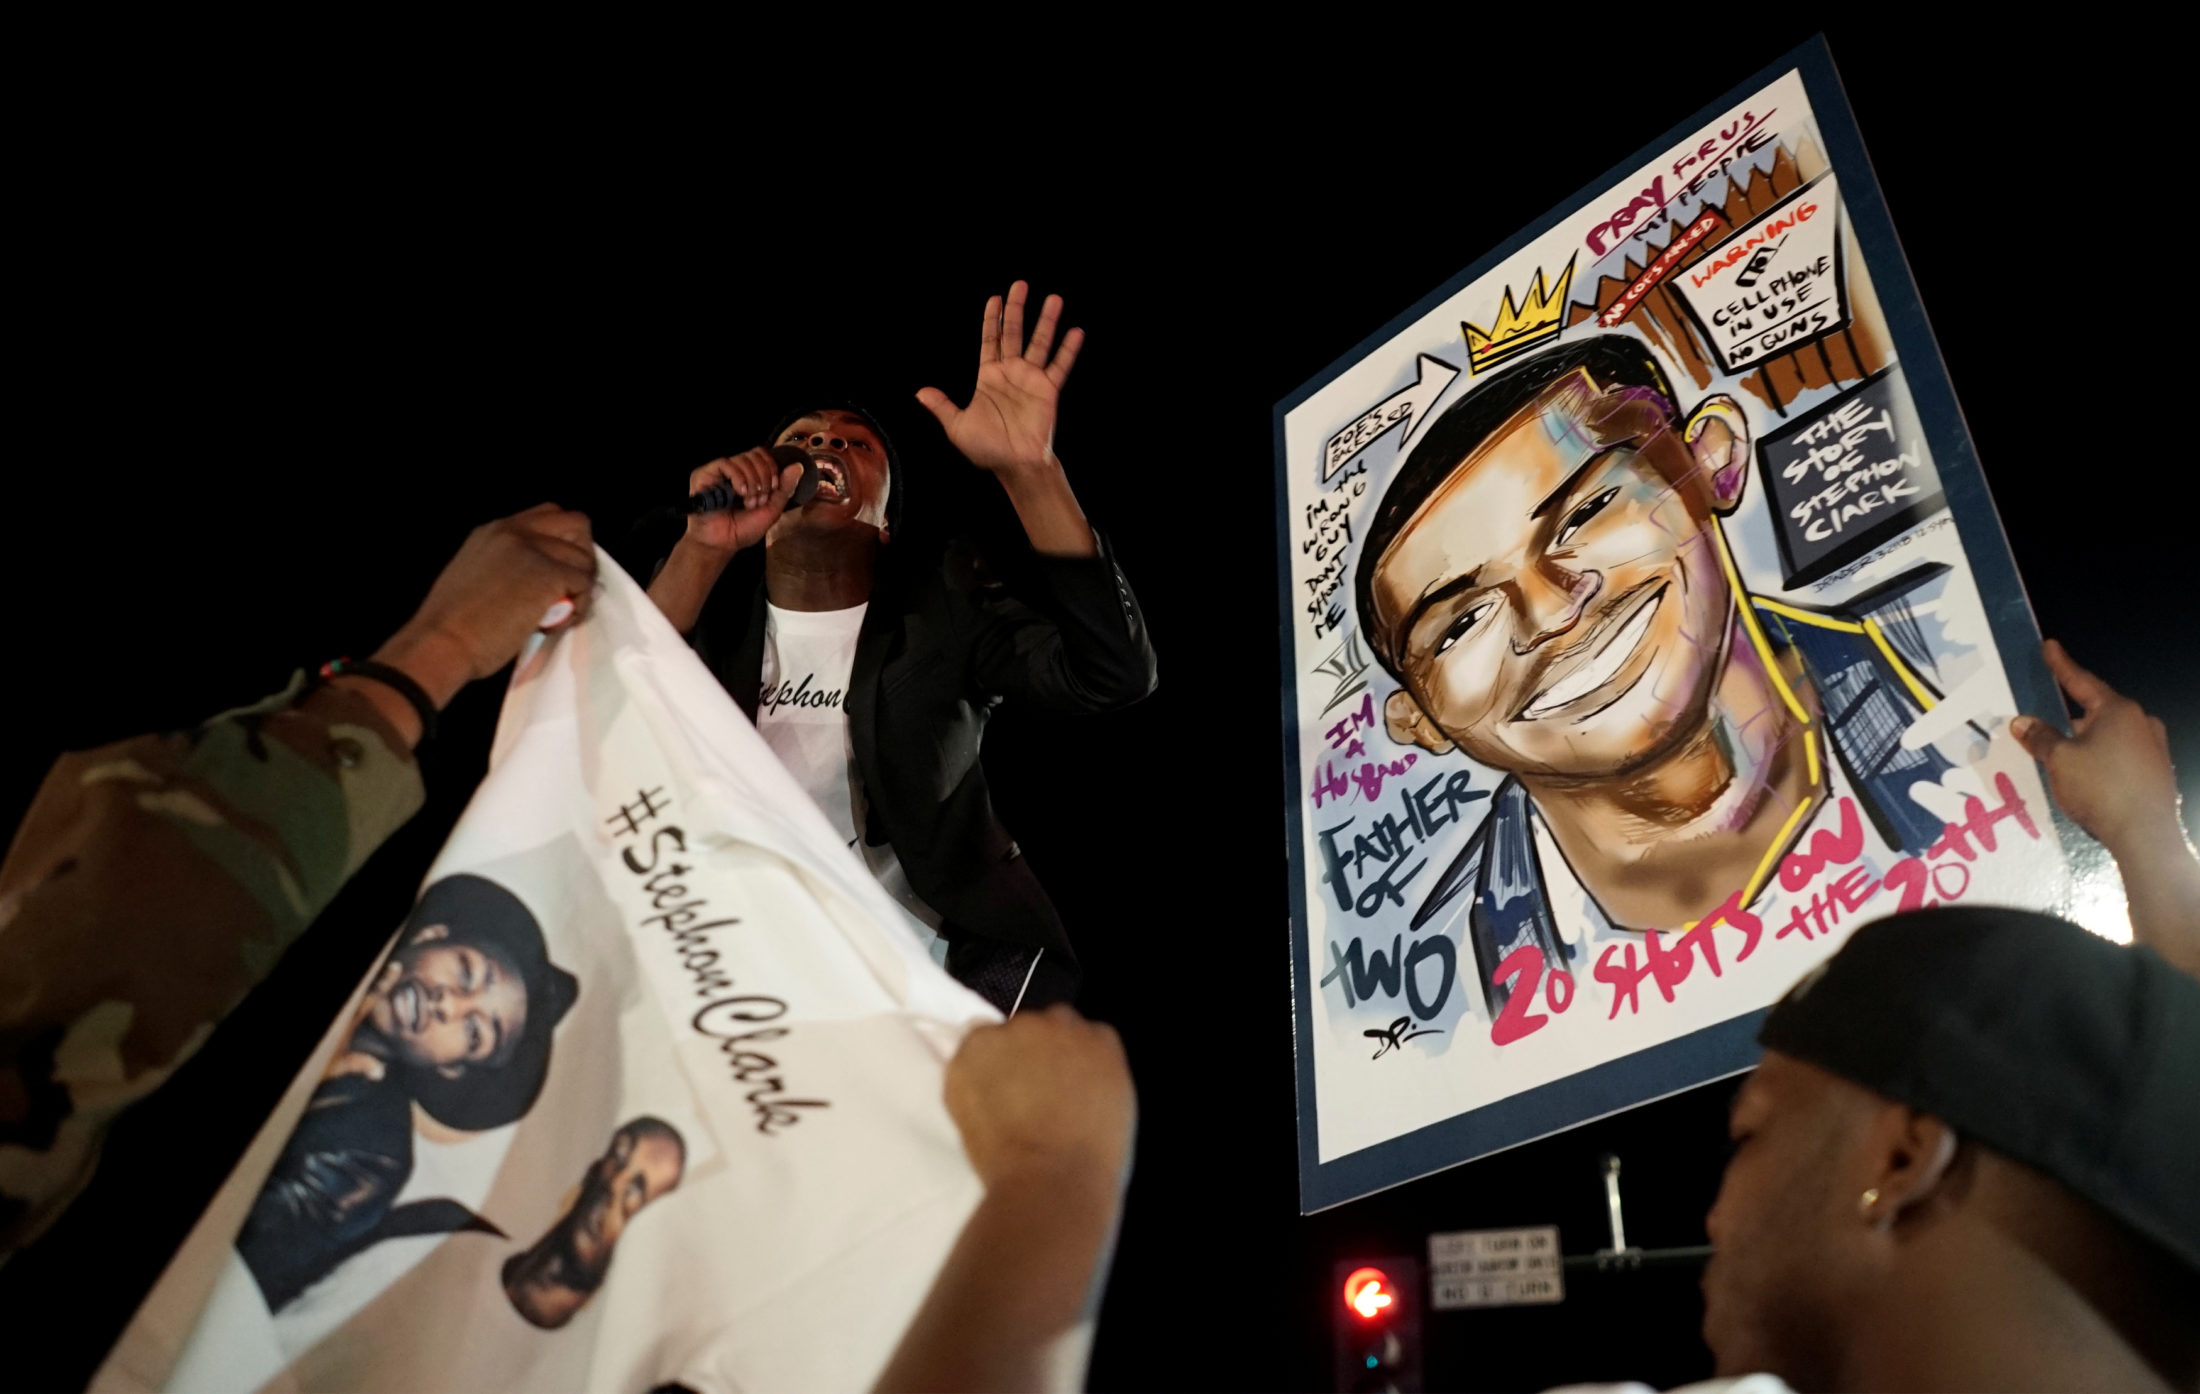 Stevante Clark, brother of Stephon Clark, speaks to the crowd during a vigil to protest the police shooting of Stephon Clark, in Sacramento, California. Photo by Bob Strong/Reuters